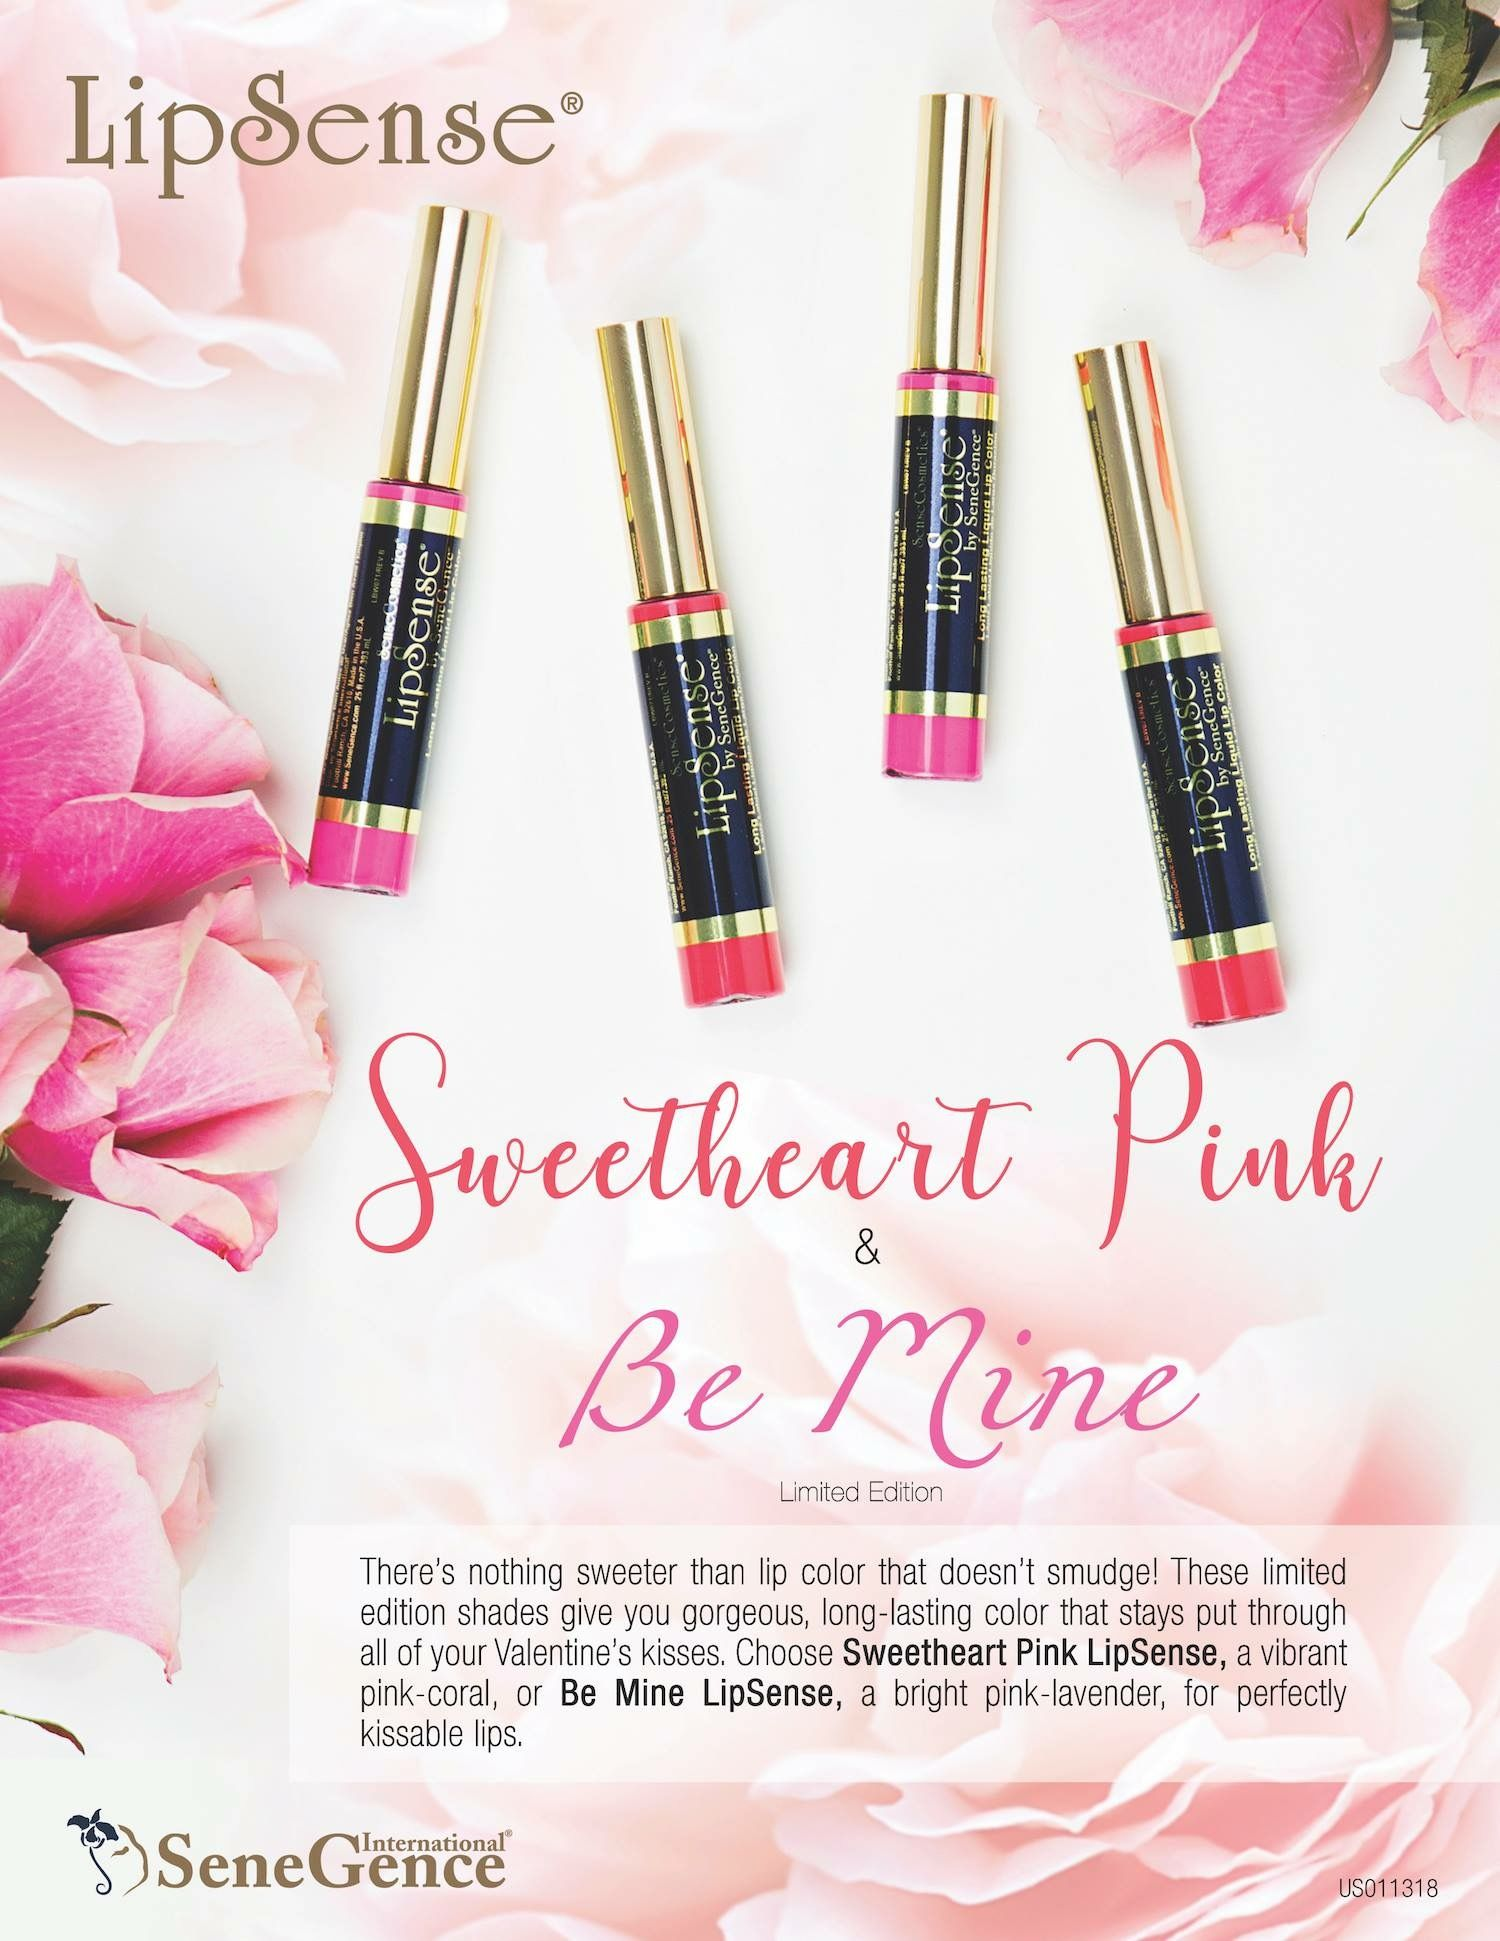 Be Mine & Sweetheart Pink Limited Edition LipSense ️ Love